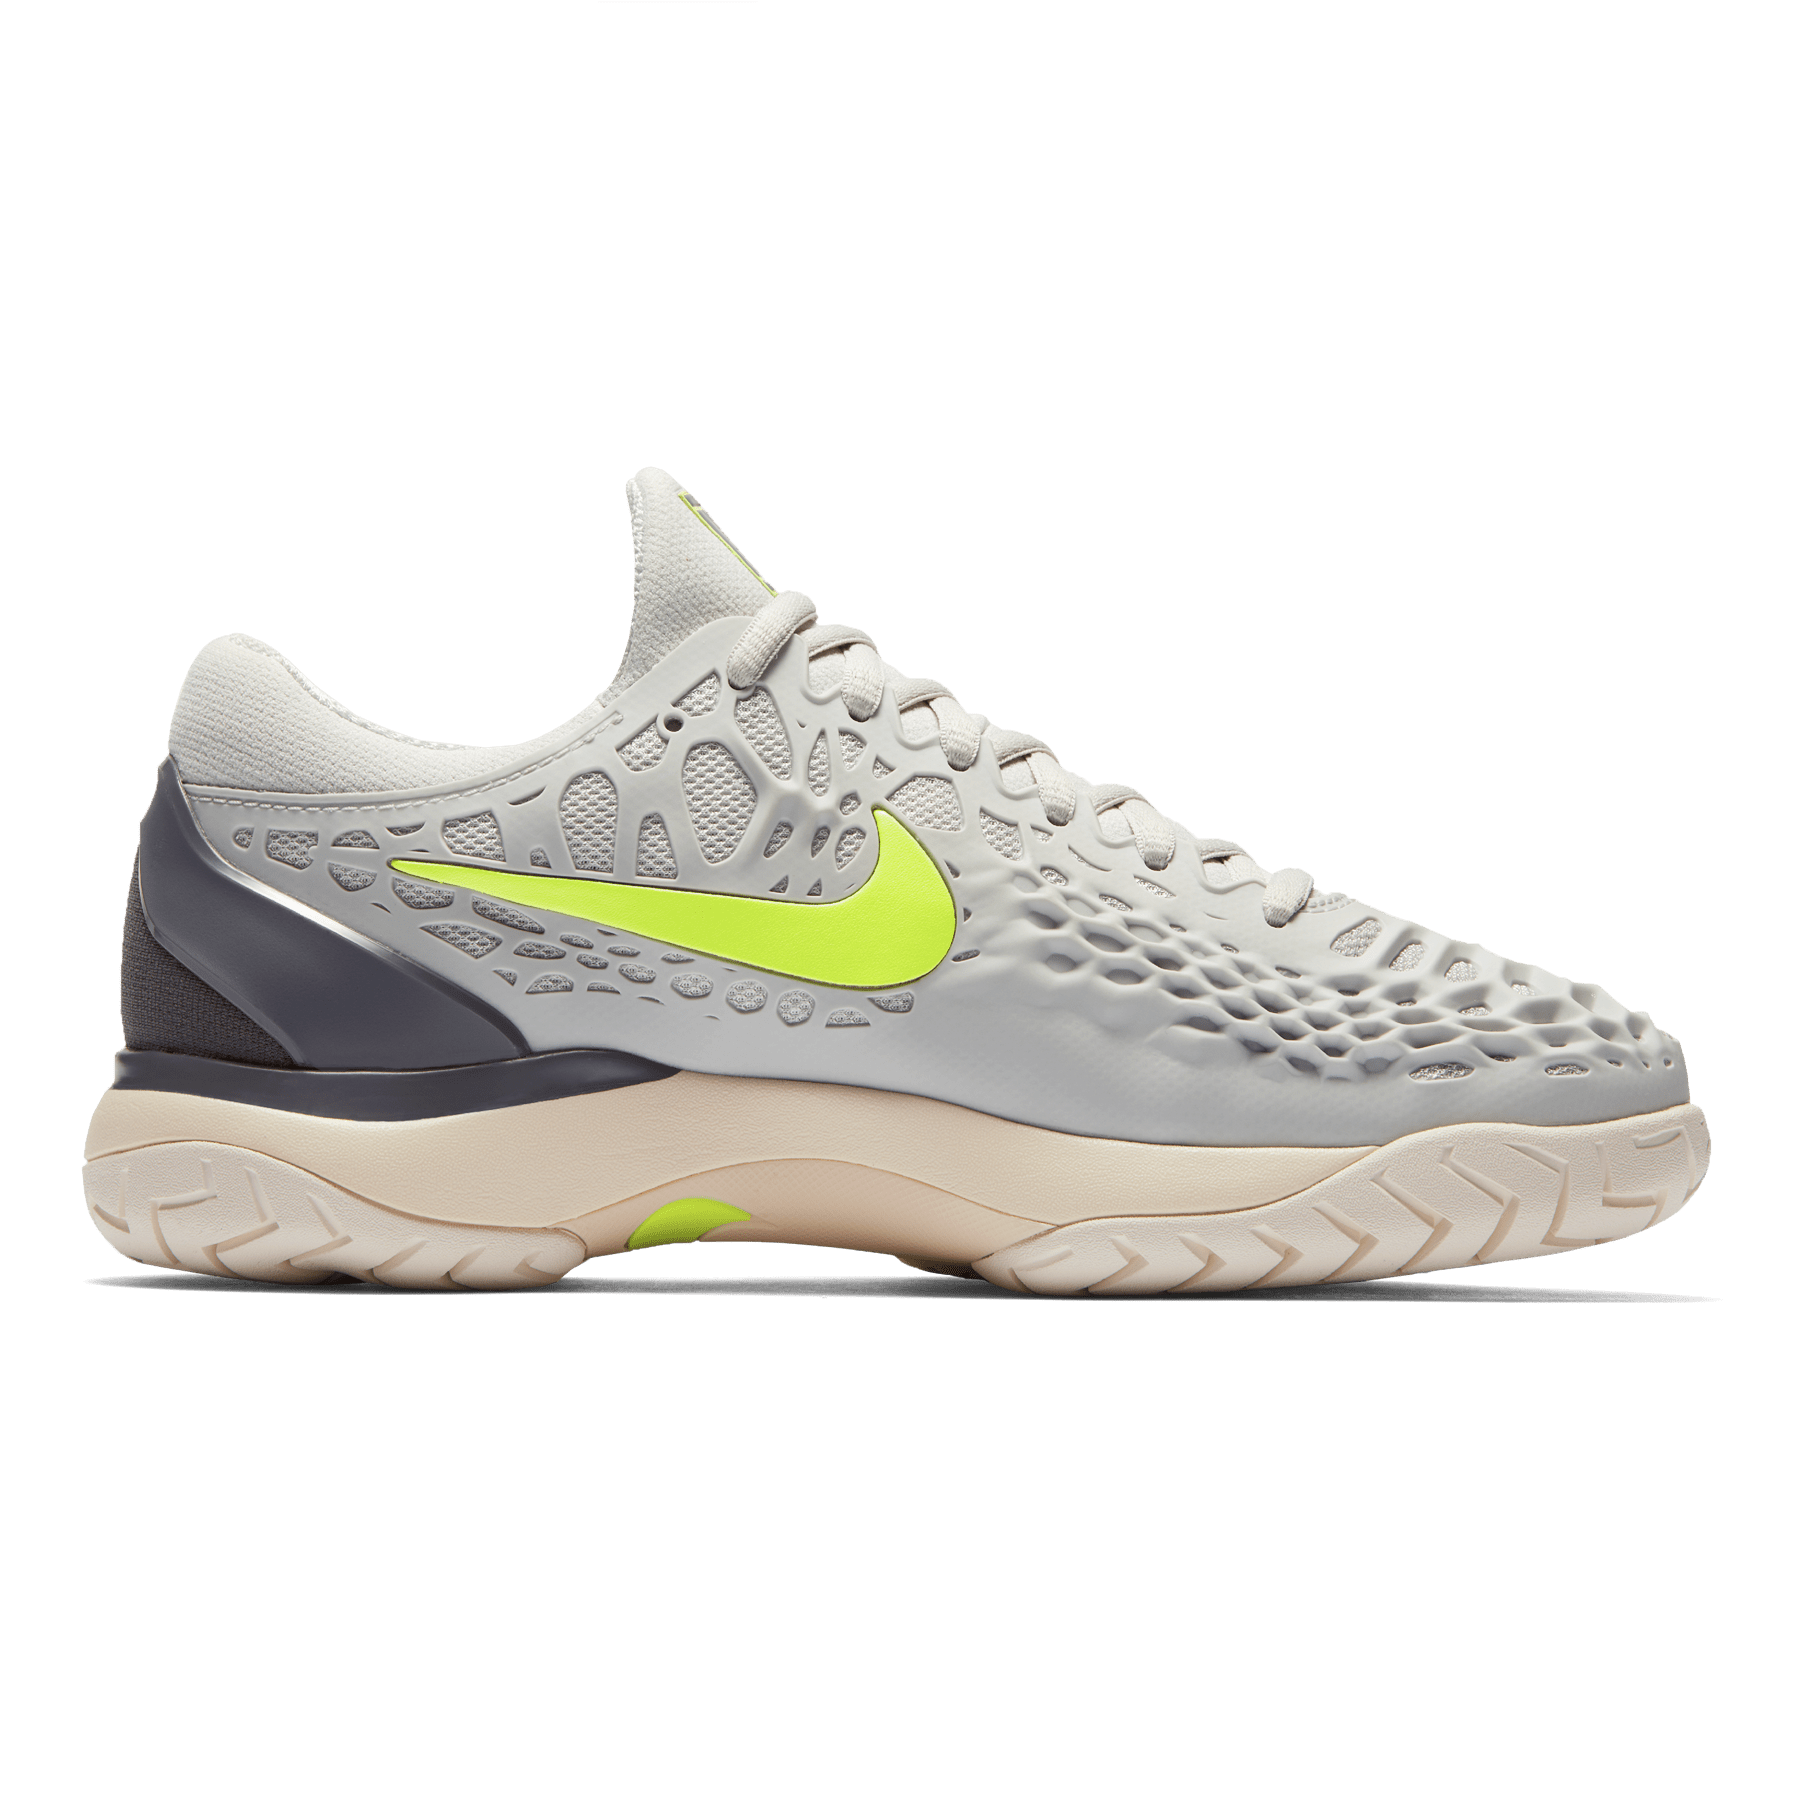 Nike Zoom Grey And Green Nike Zoom Cage 3 Women S Tennis Shoe Grey Green